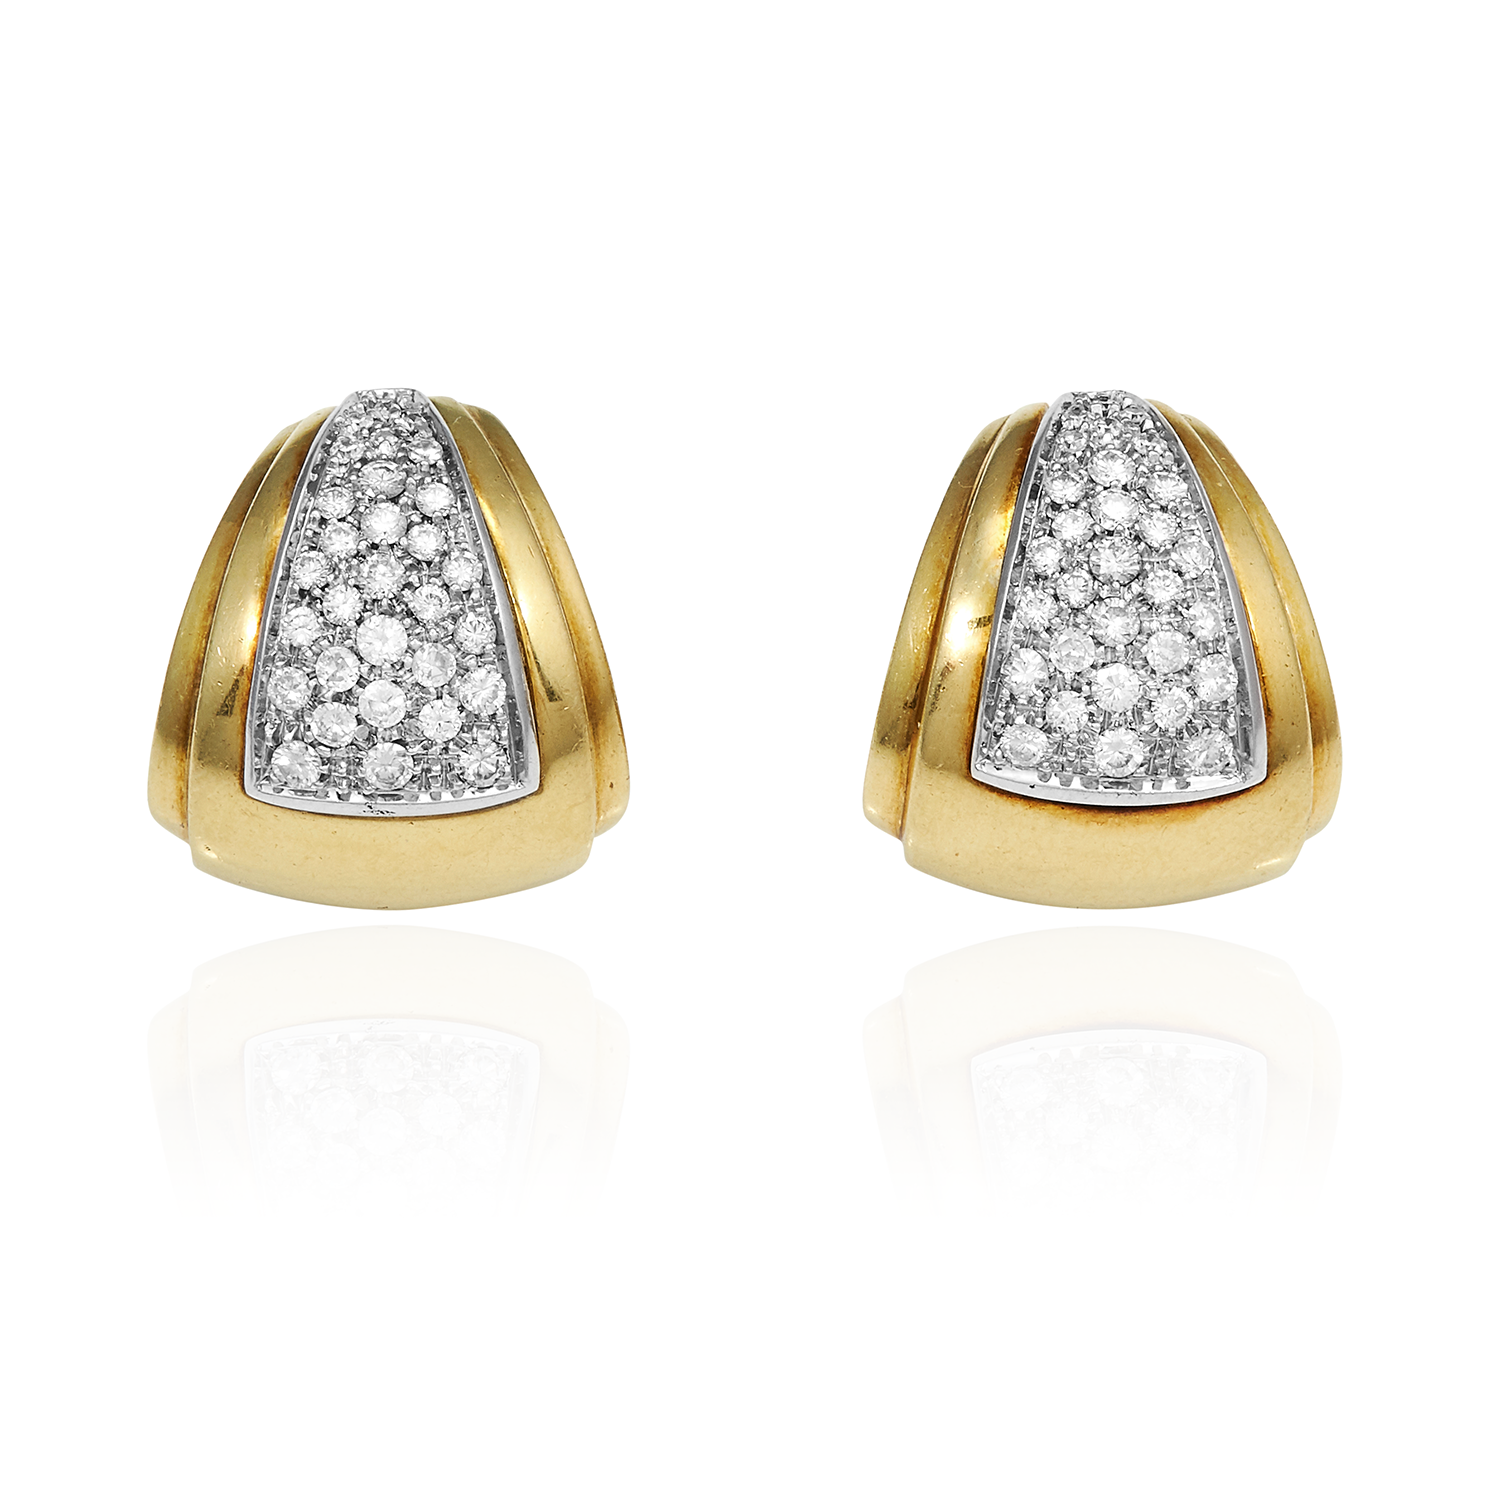 Los 49 - A PAIR OF VINTAGE DIAMOND EARRINGS in 18ct yellow gold, jewelled with round cut diamonds in a